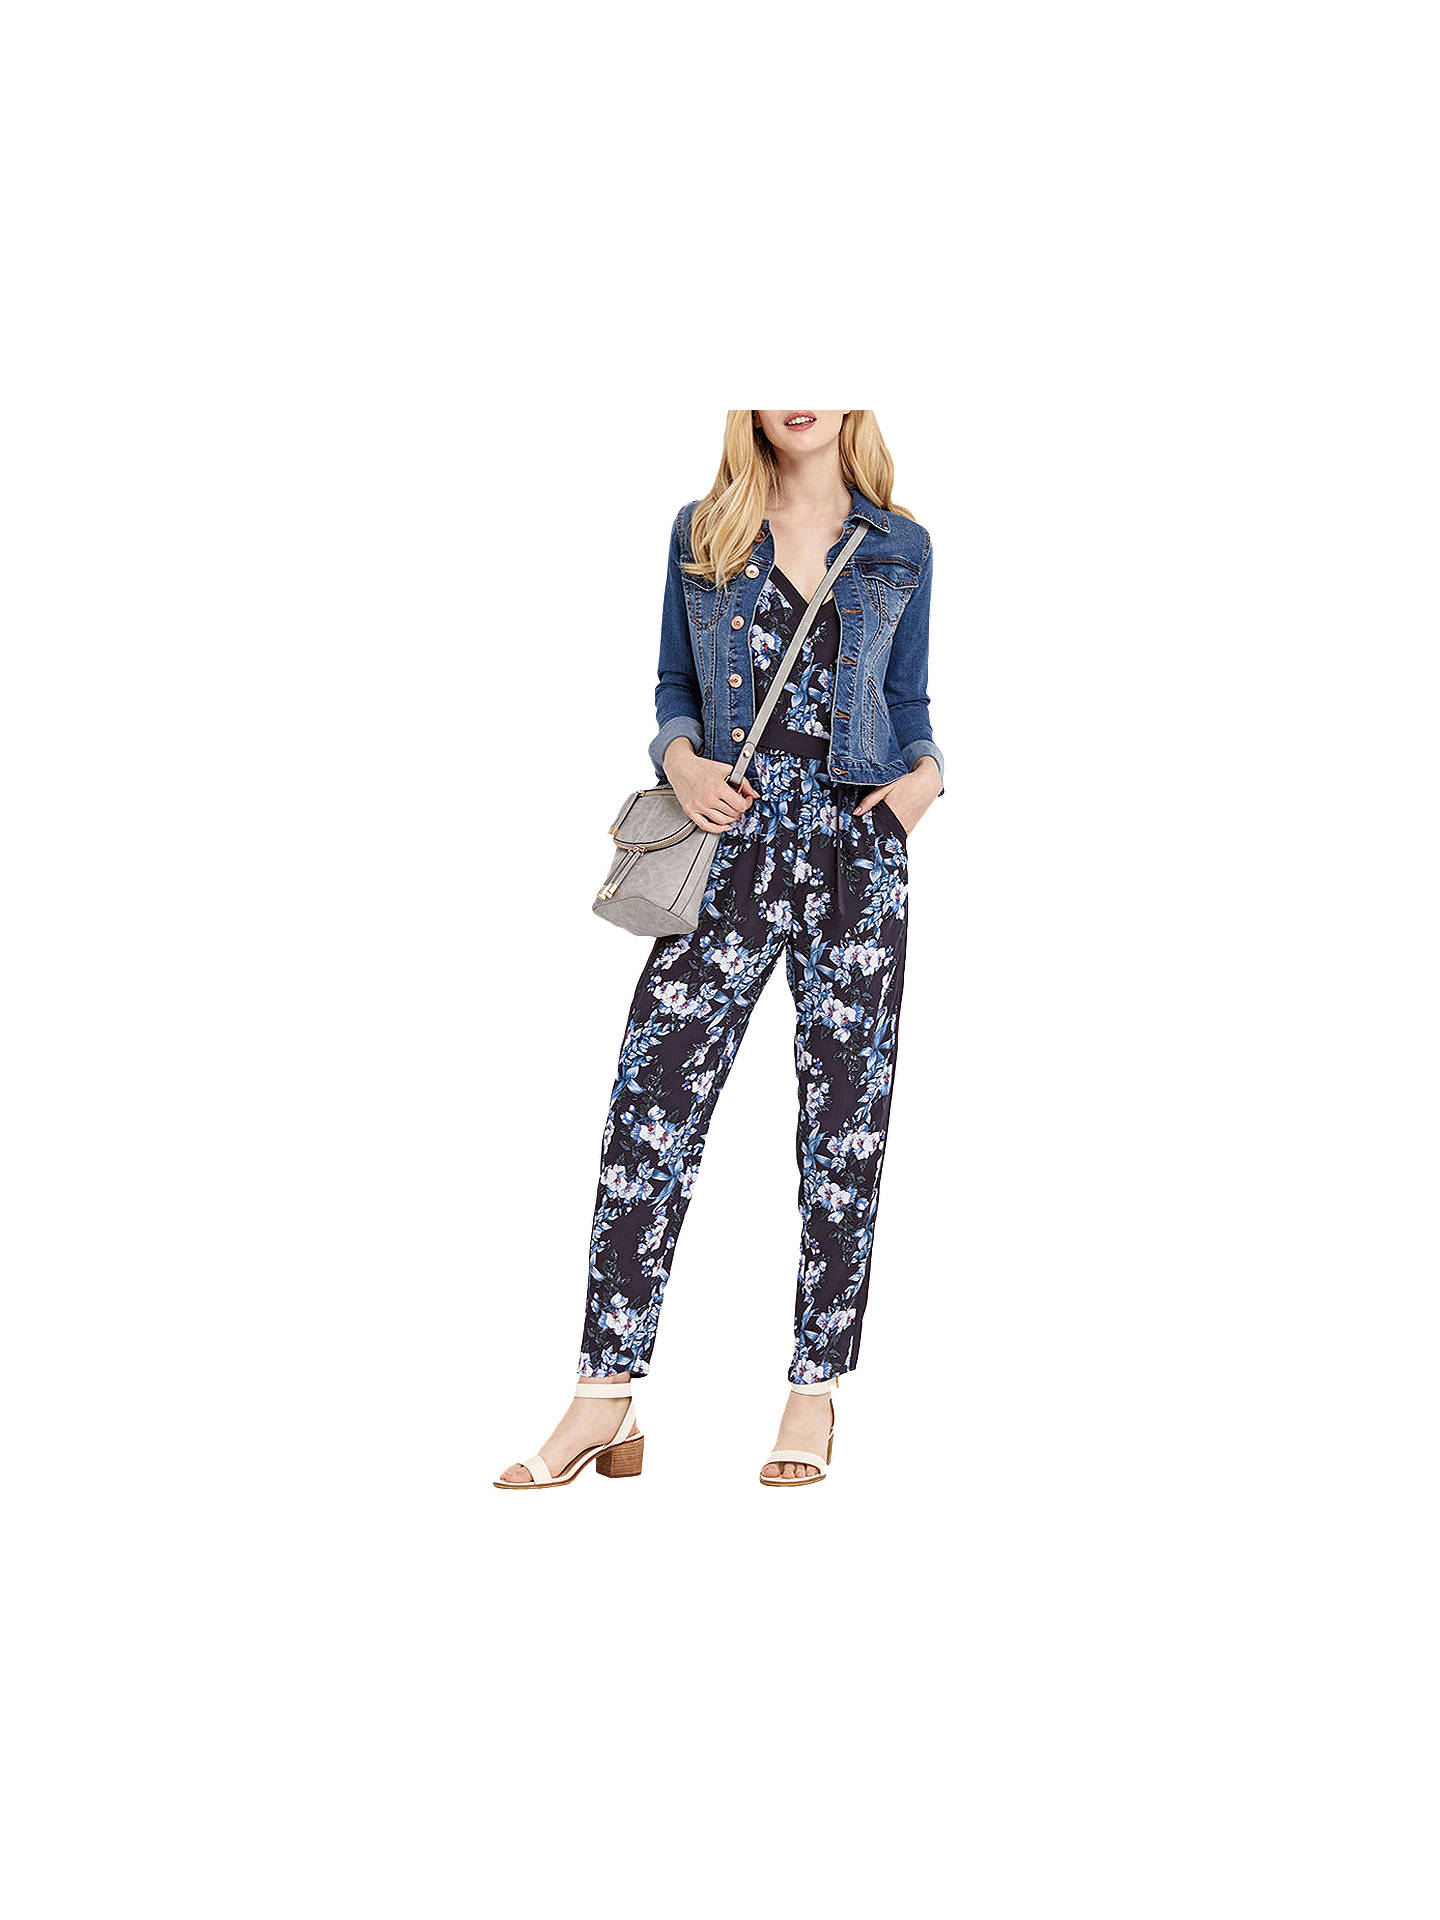 6c008881c2ac Buy Oasis Tropical Botanical Print Jumpsuit, Blue/Multi, 8 Online at  johnlewis.